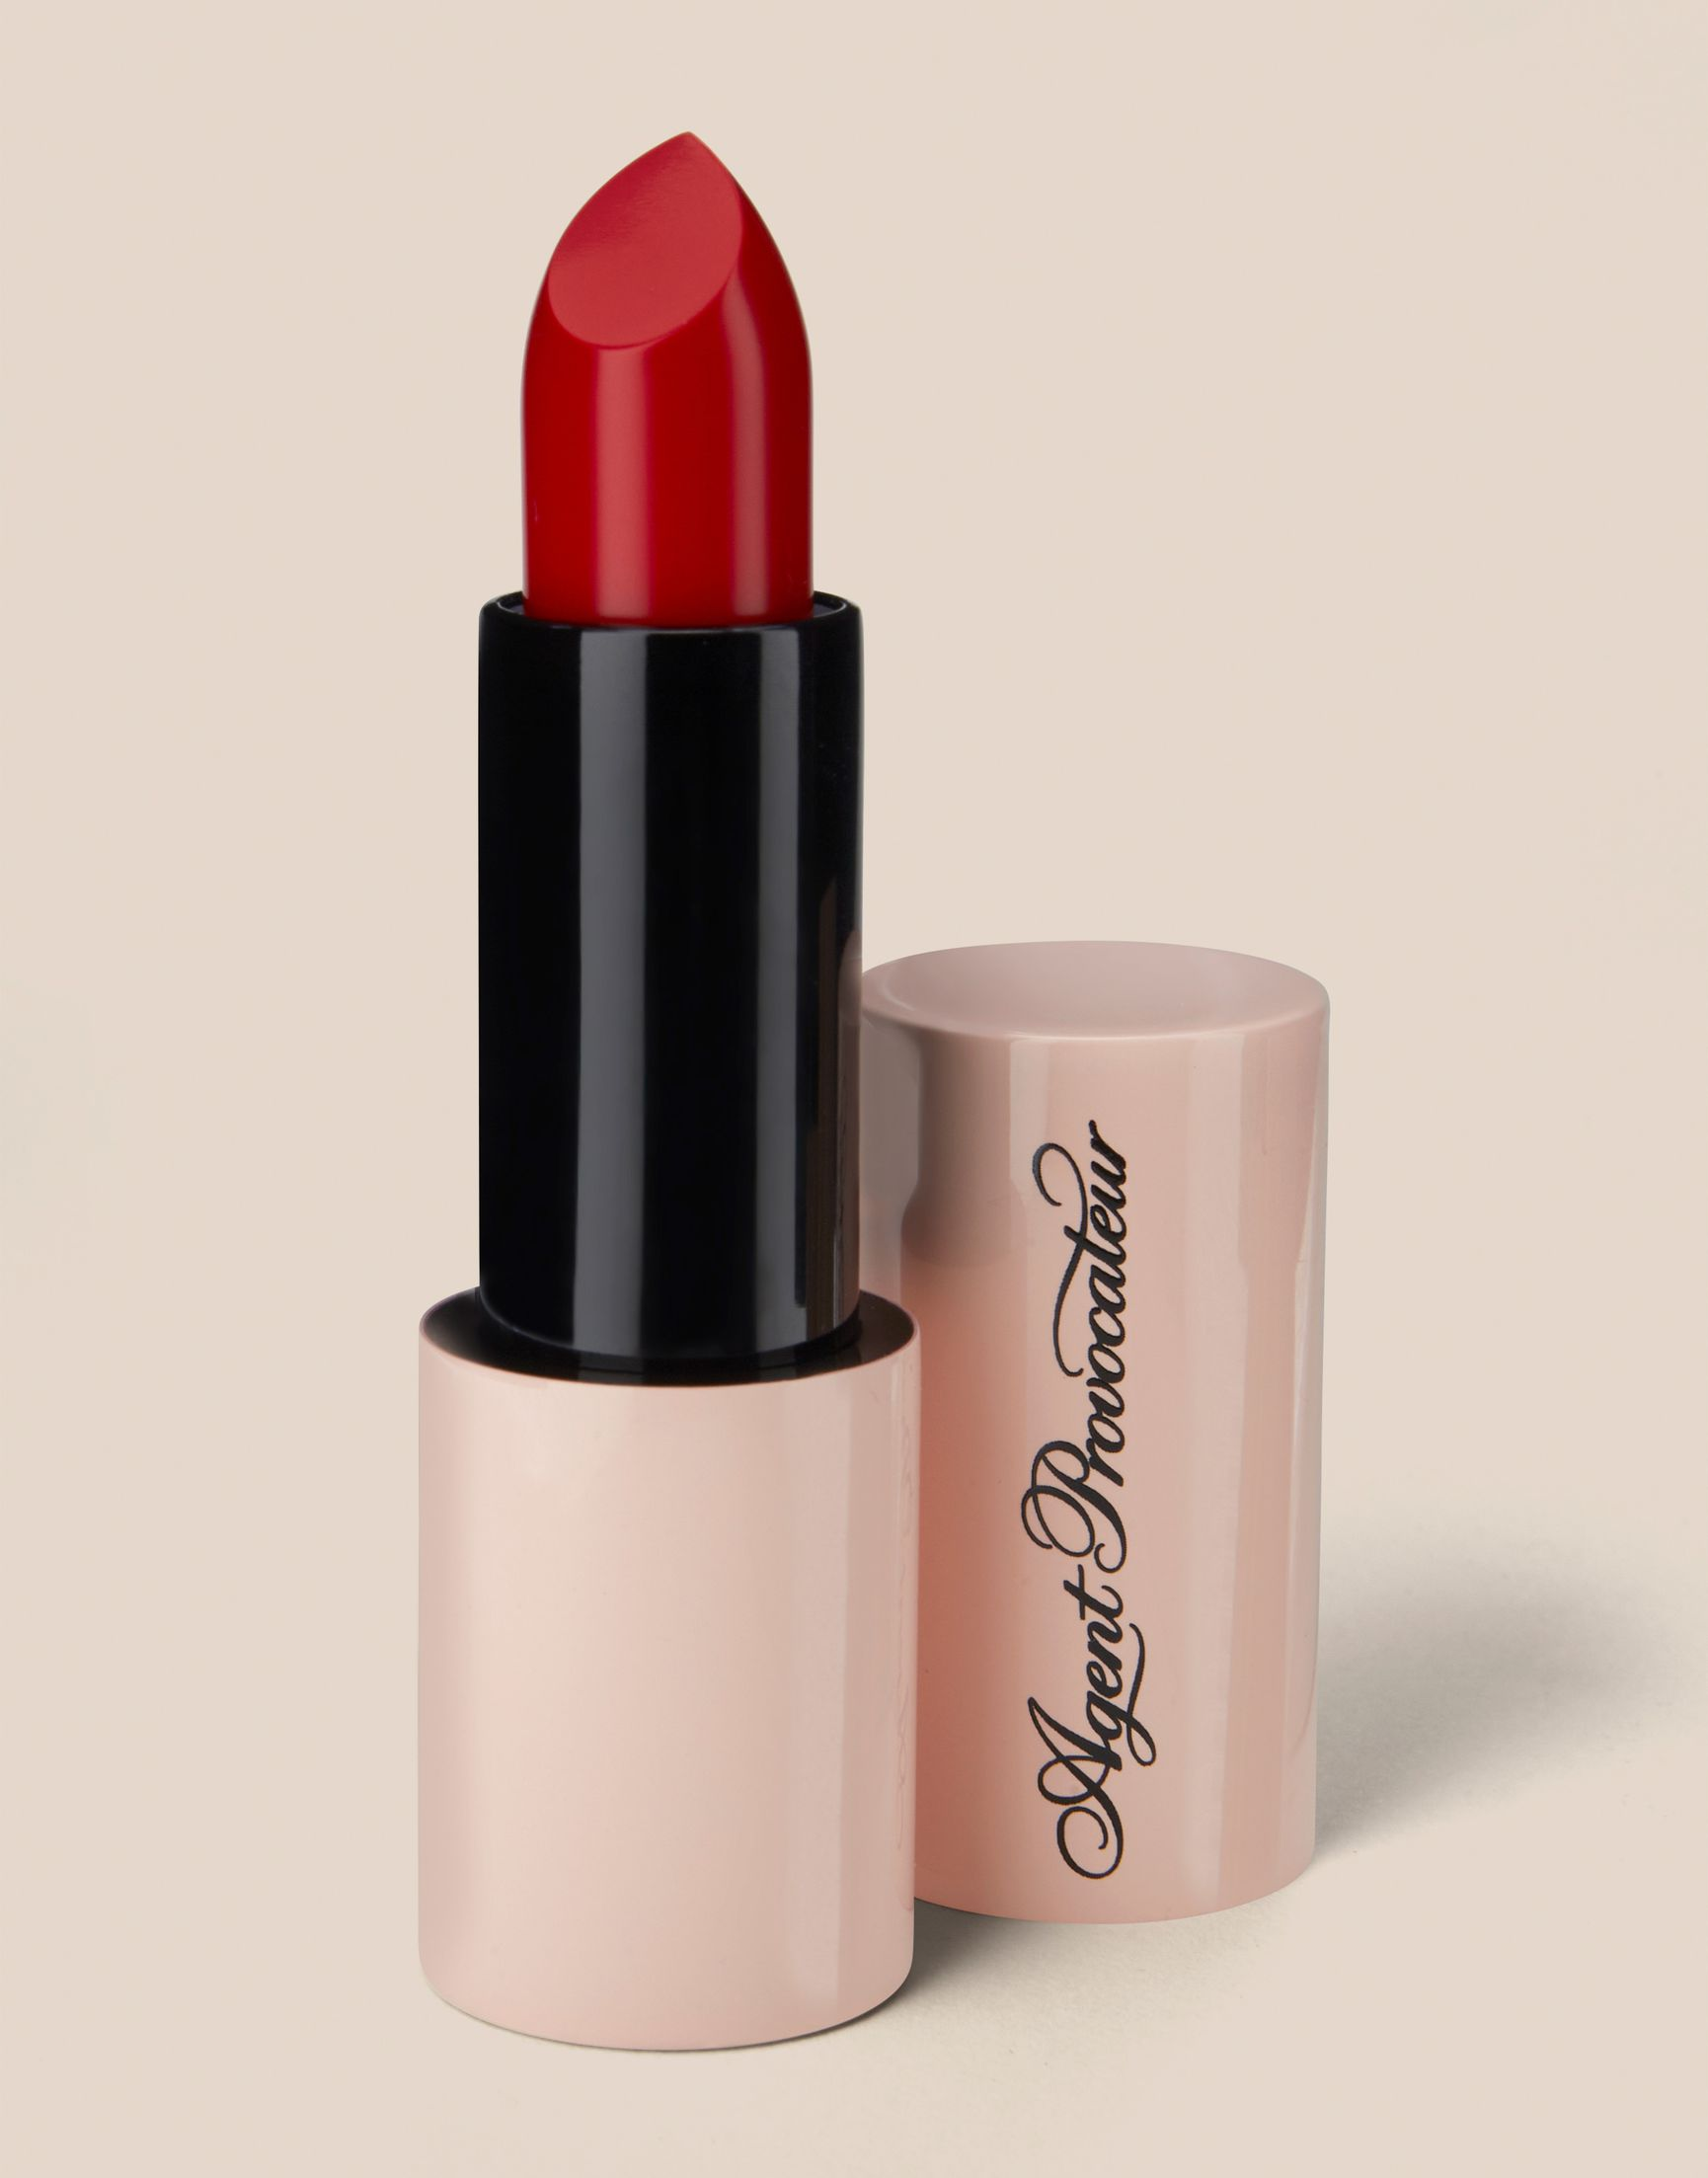 Annoushka Luminous Lipstick